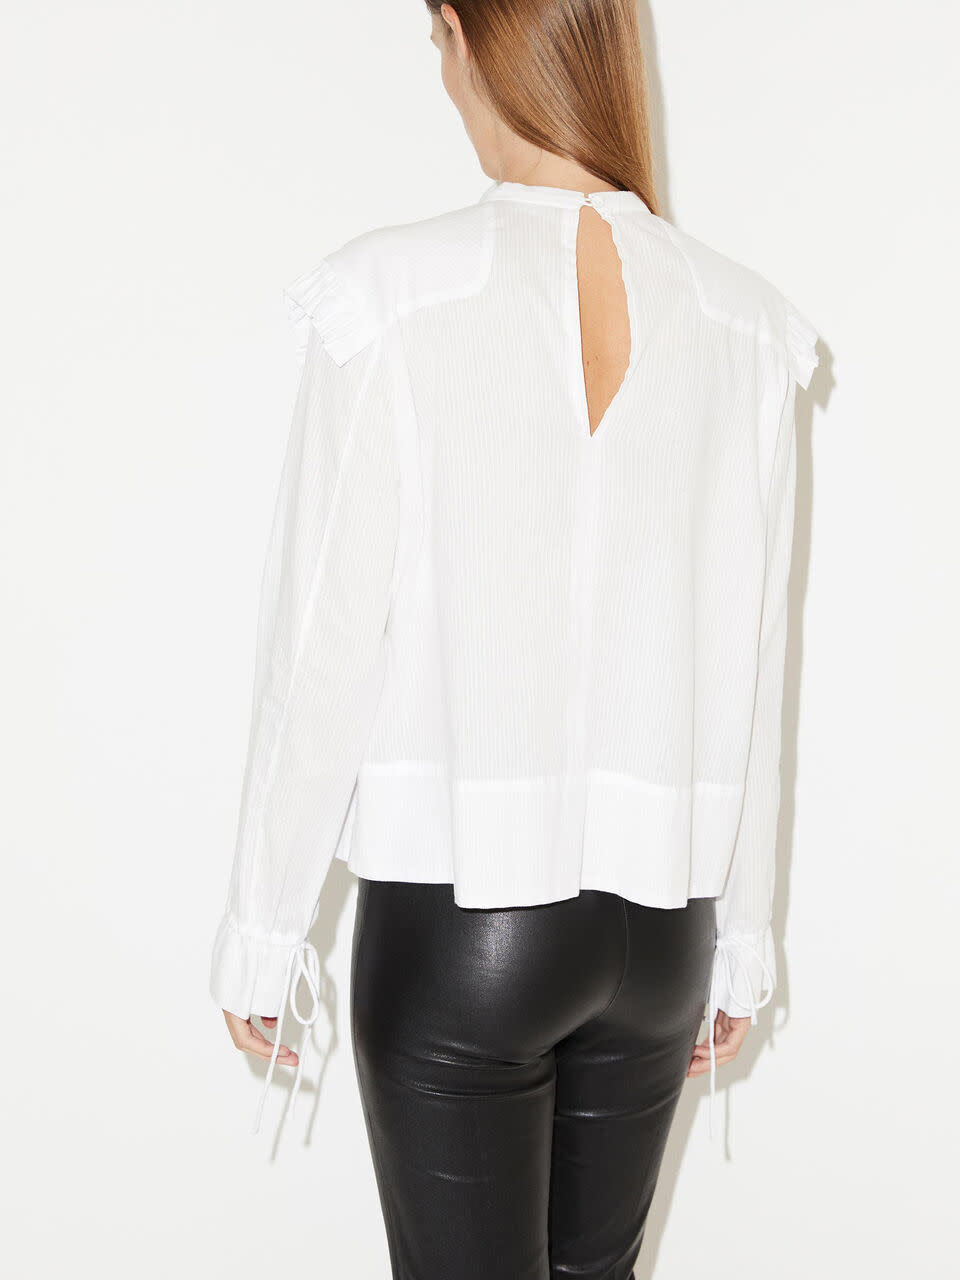 Salinger blouse by malene birger-2